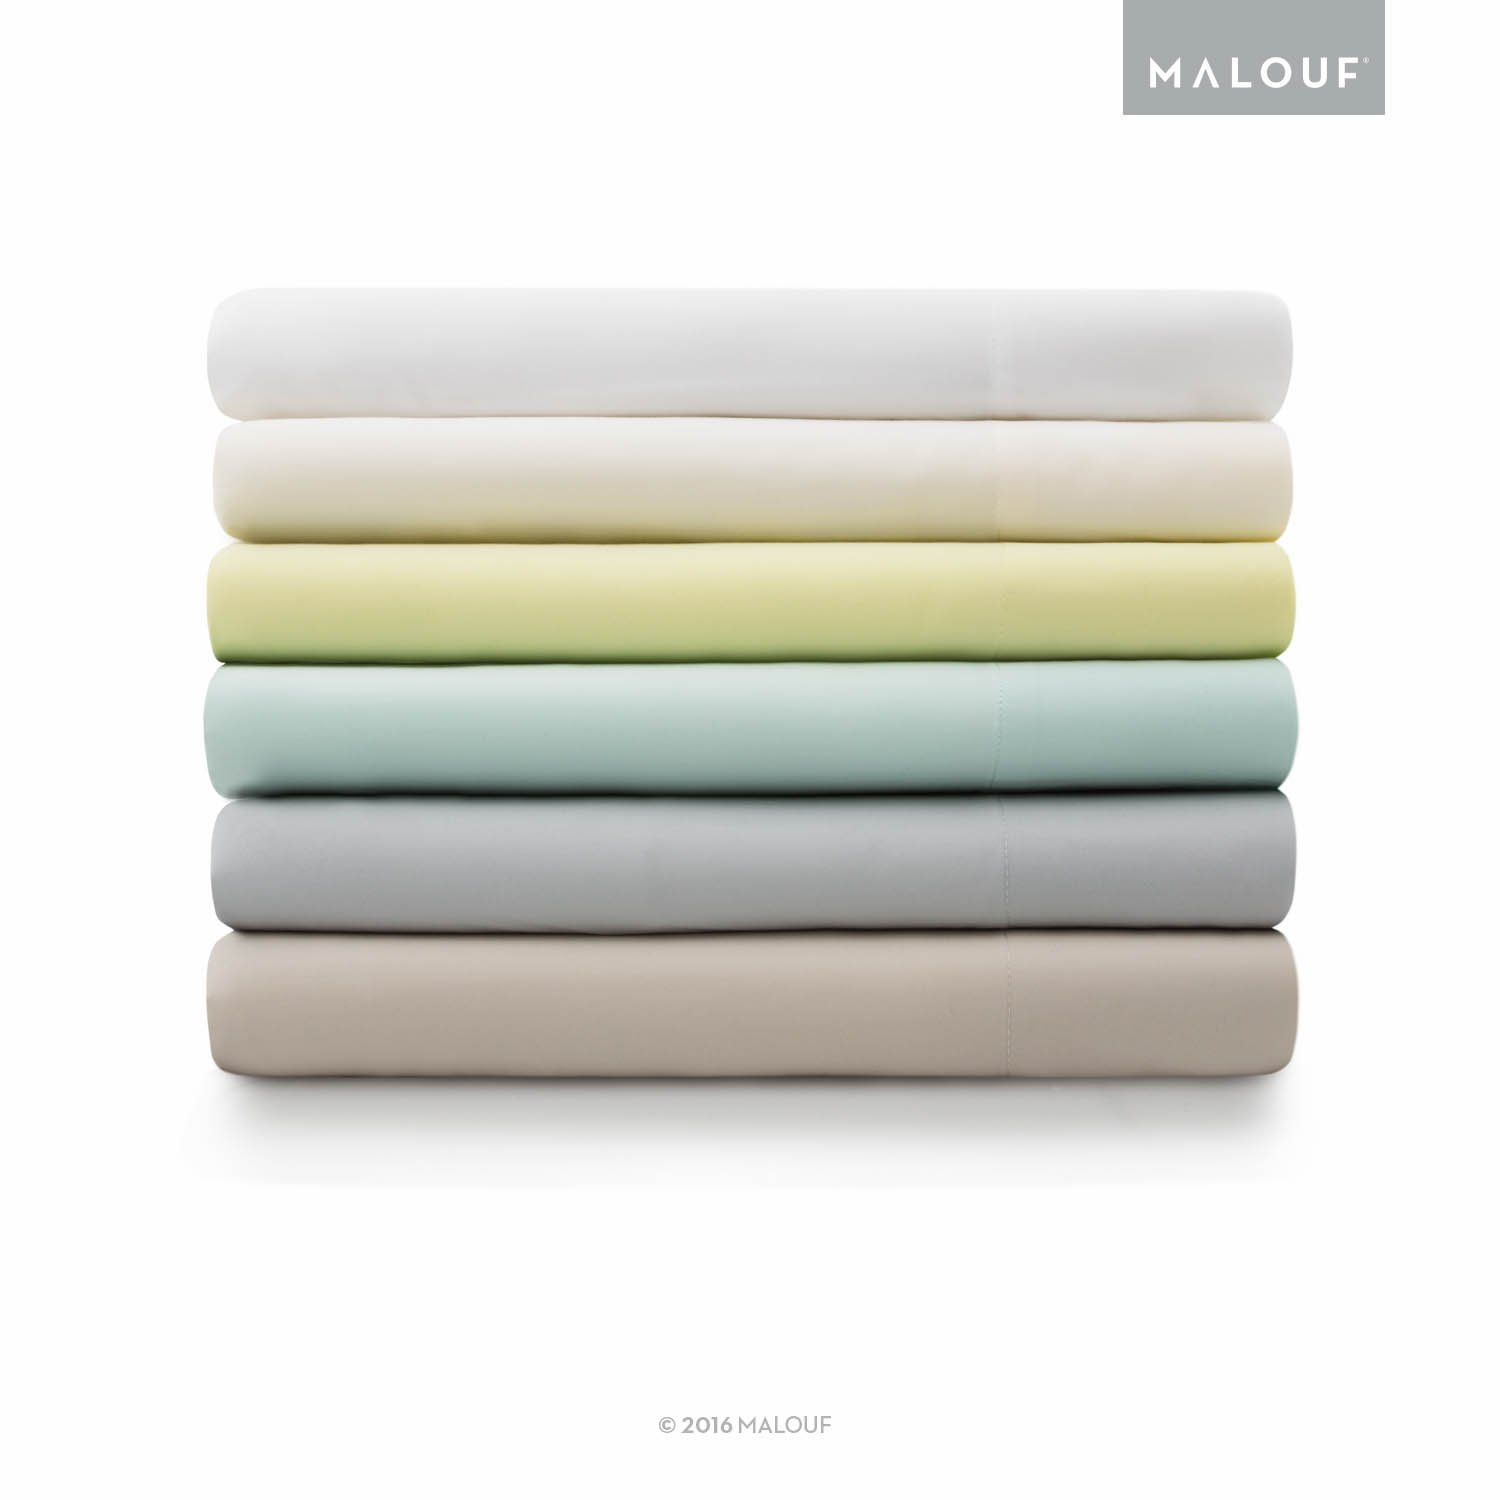 MALOUF Split Head 100% Rayon From Bamboo Sheet Set - 4-pc Set - Queen - Driftwood by MALOUF (Image #2)